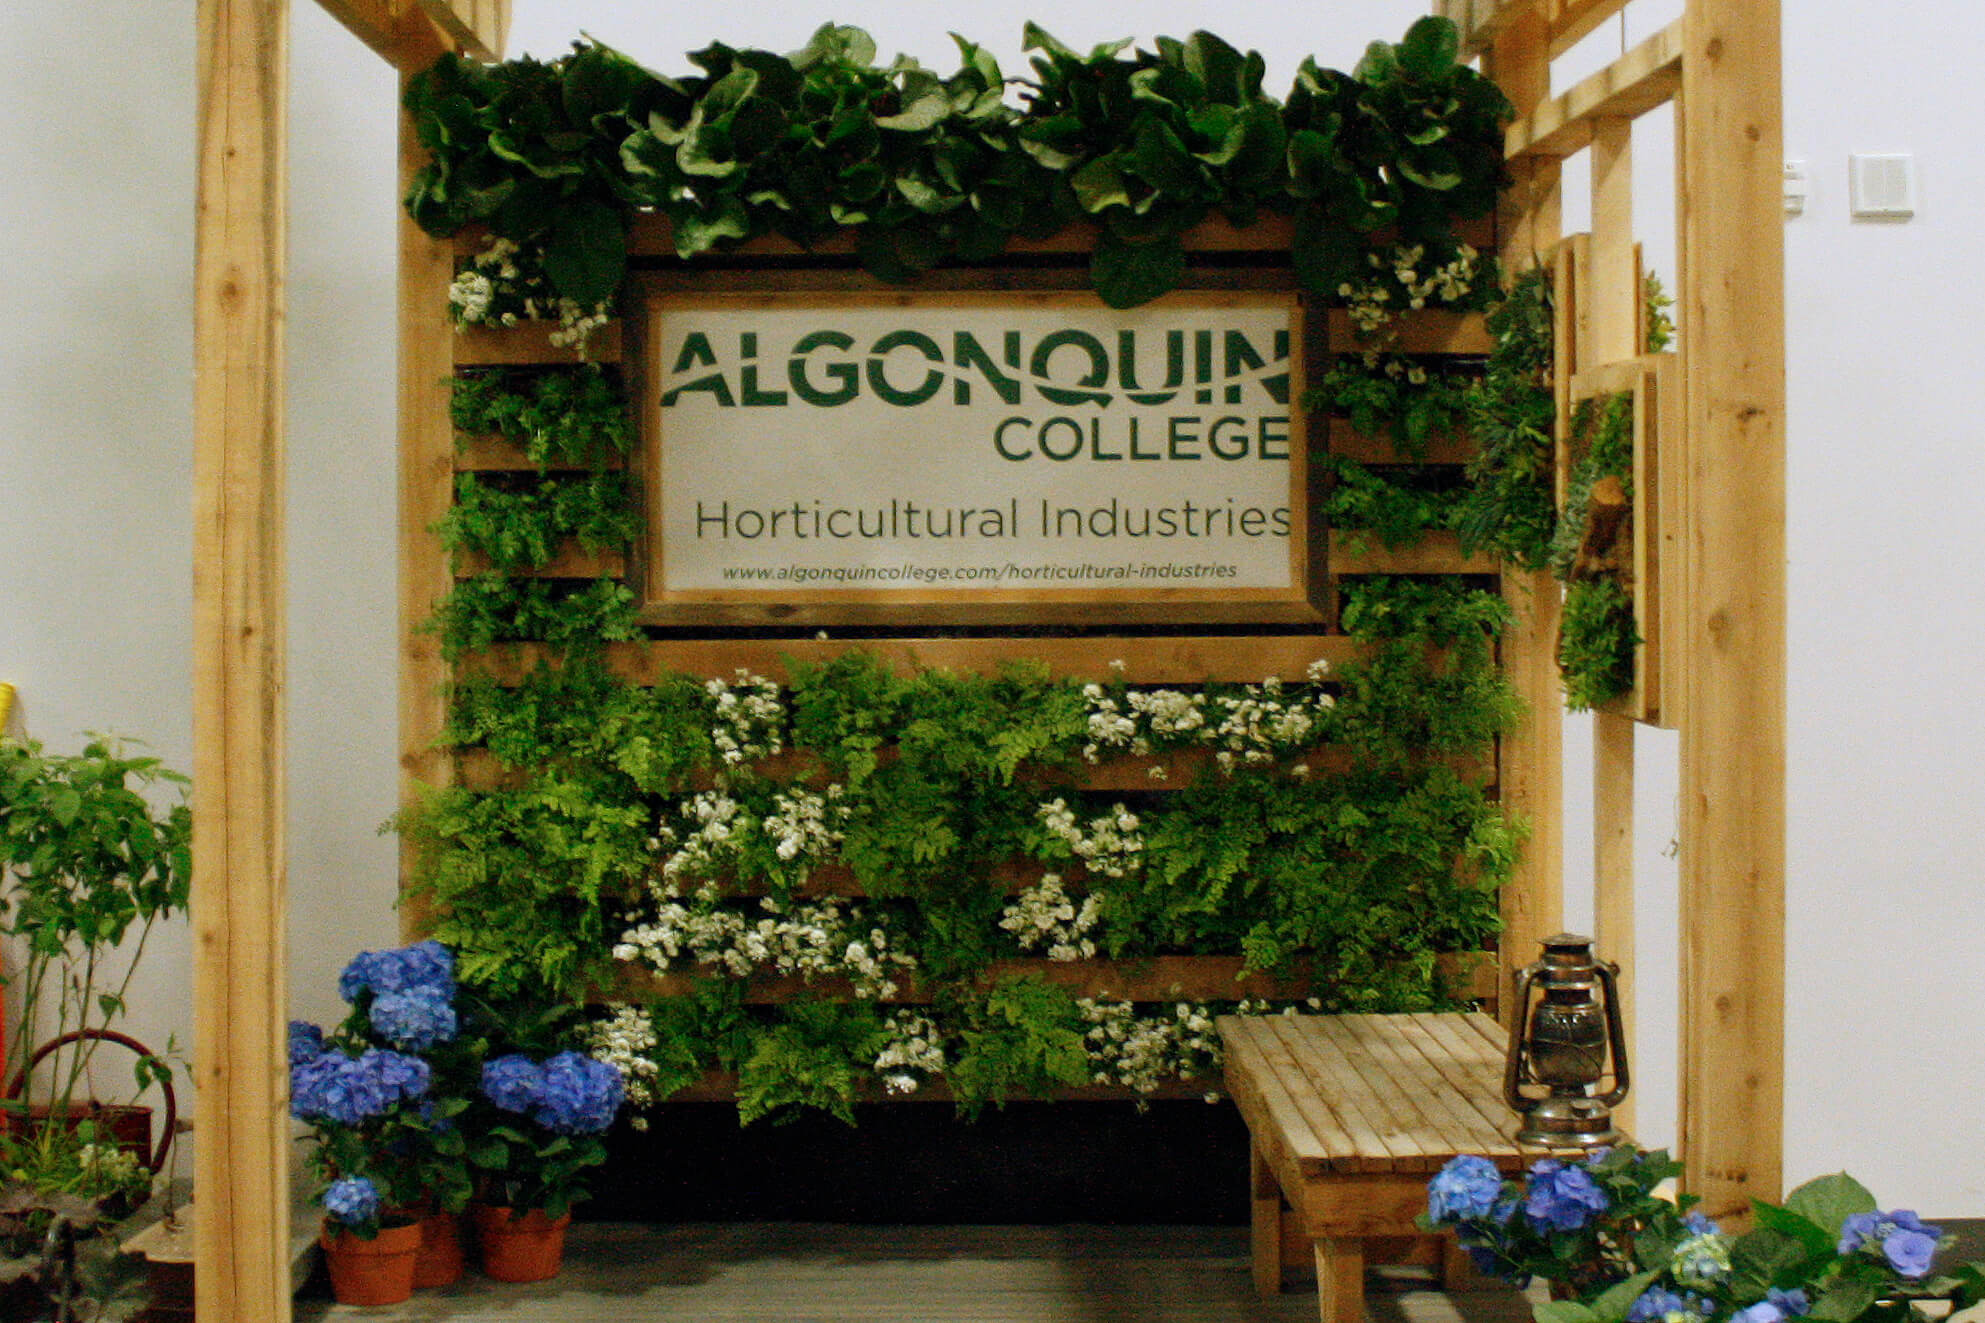 Ohgs2016 algonquin college landscape ontario for Garden design university